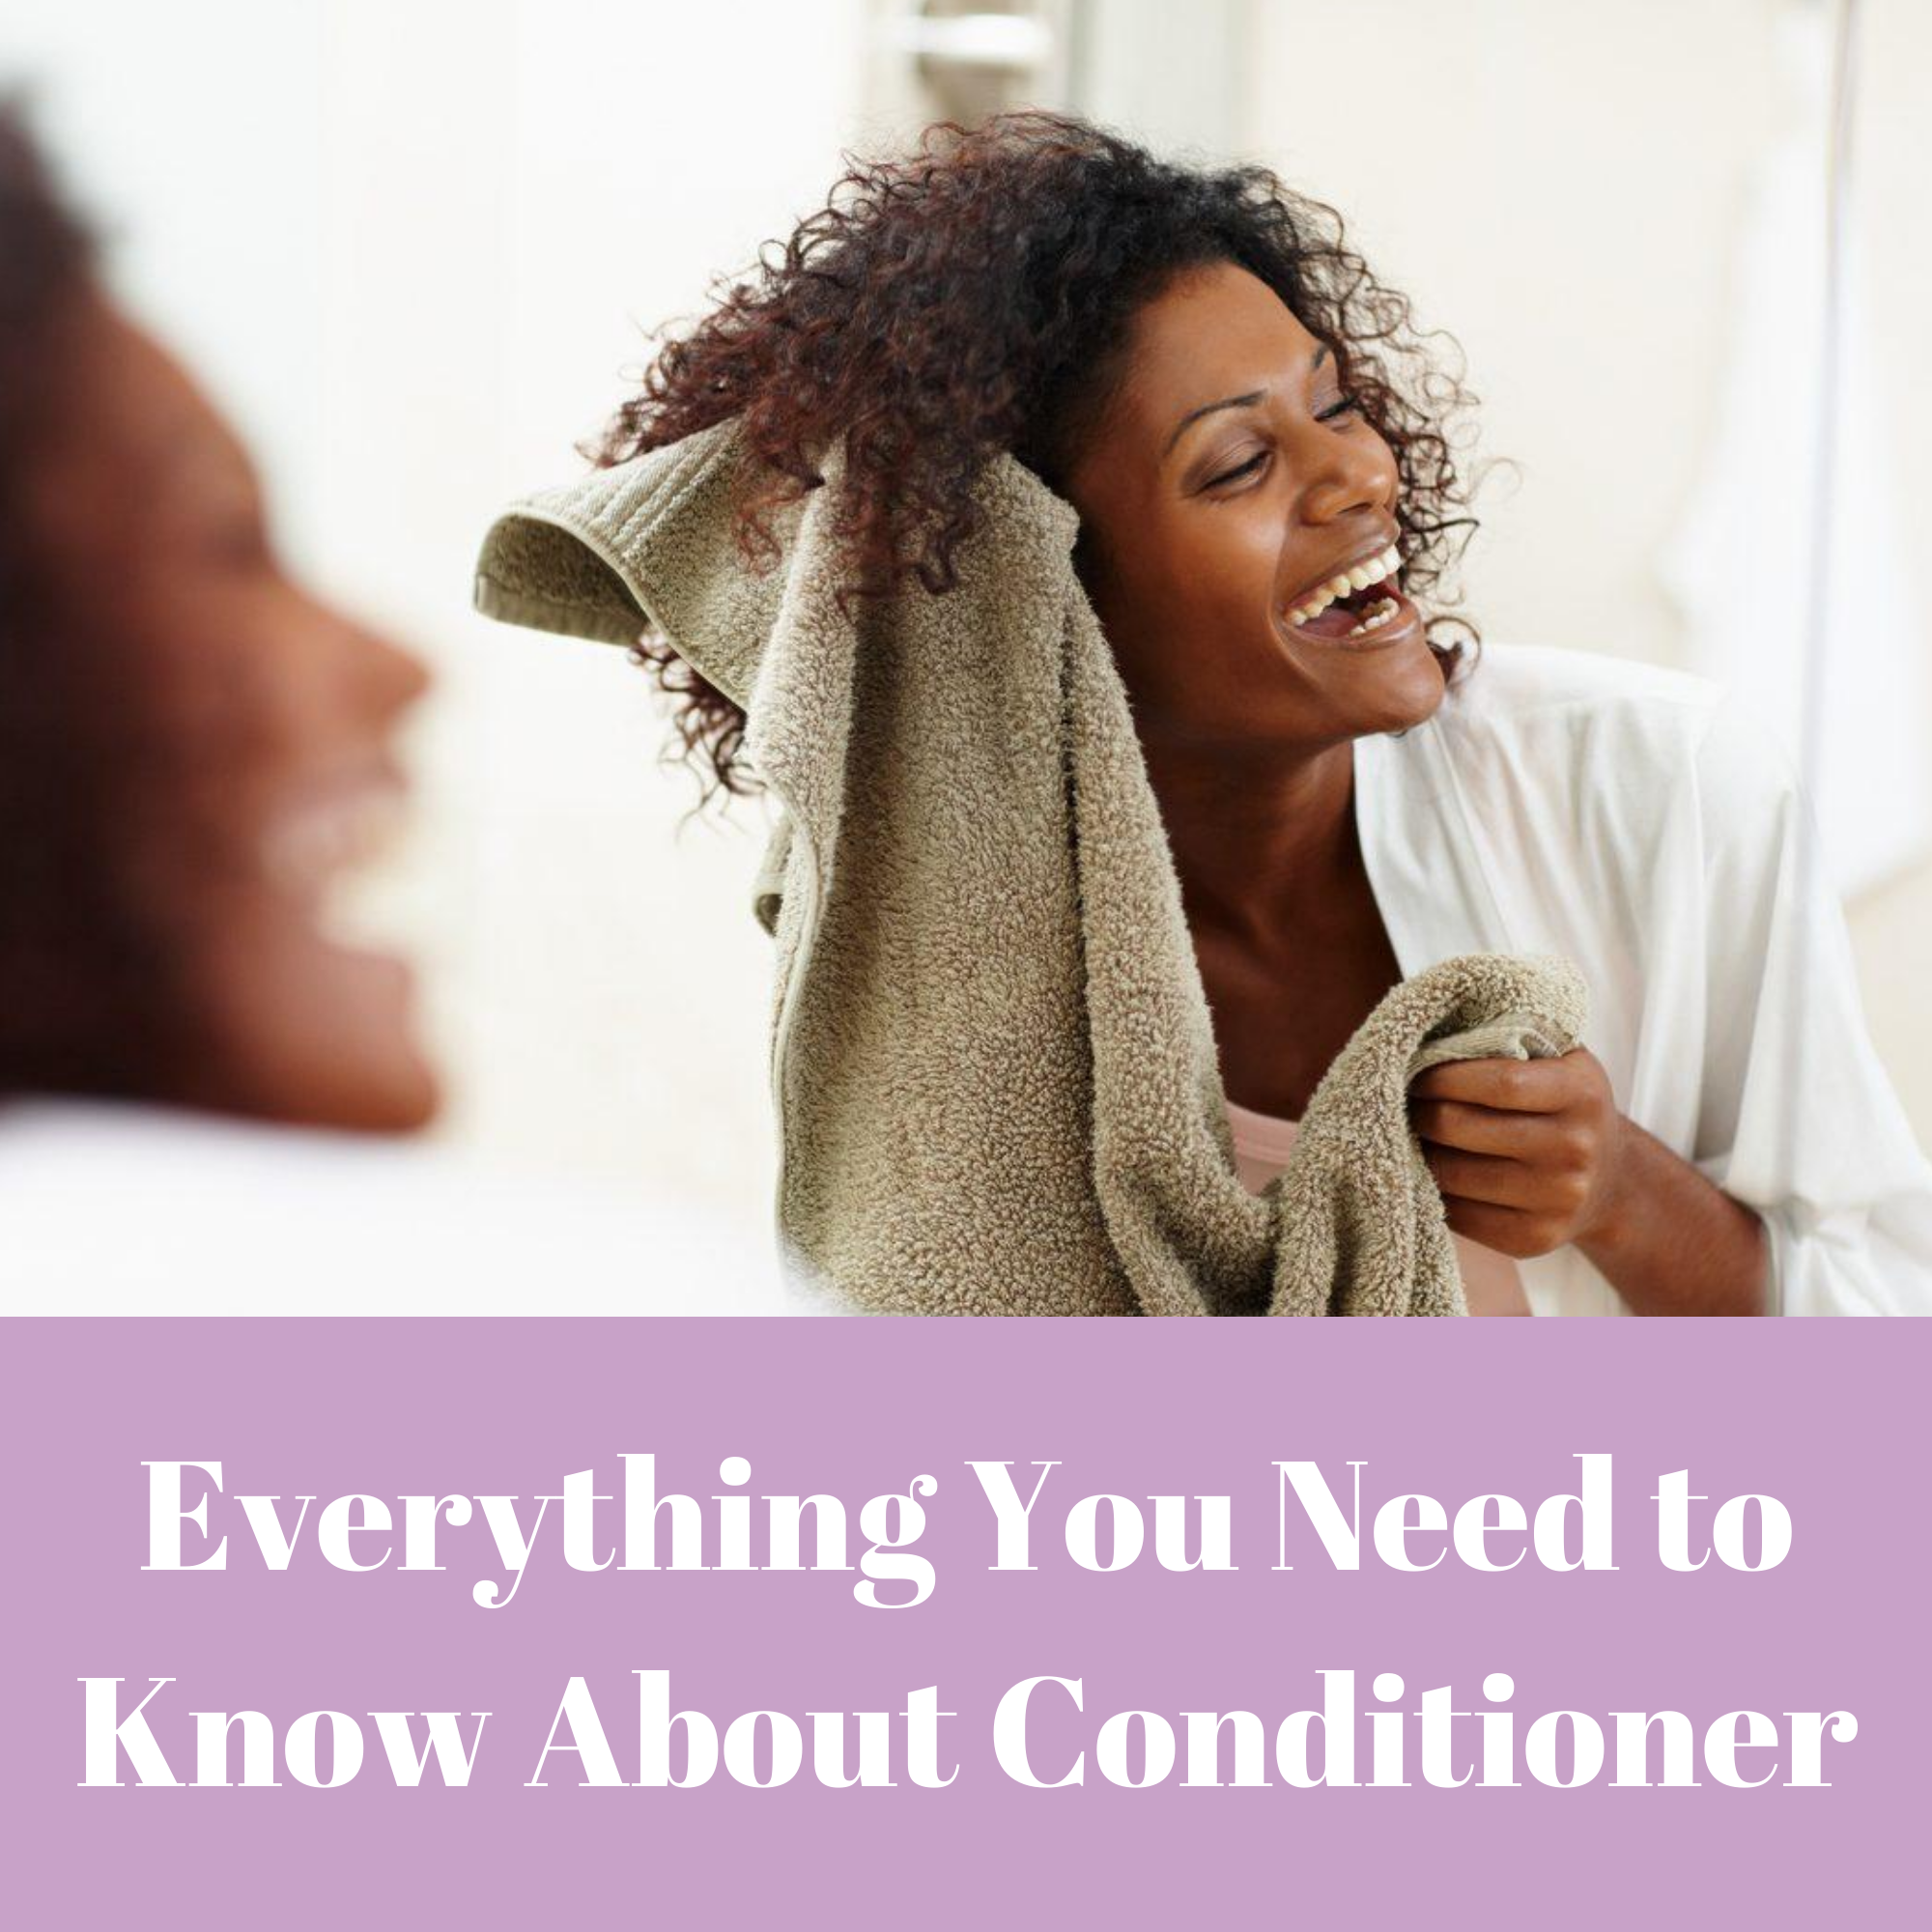 EVERYTHING YOU NEED TO KNOW ABOUT CONDITIONER